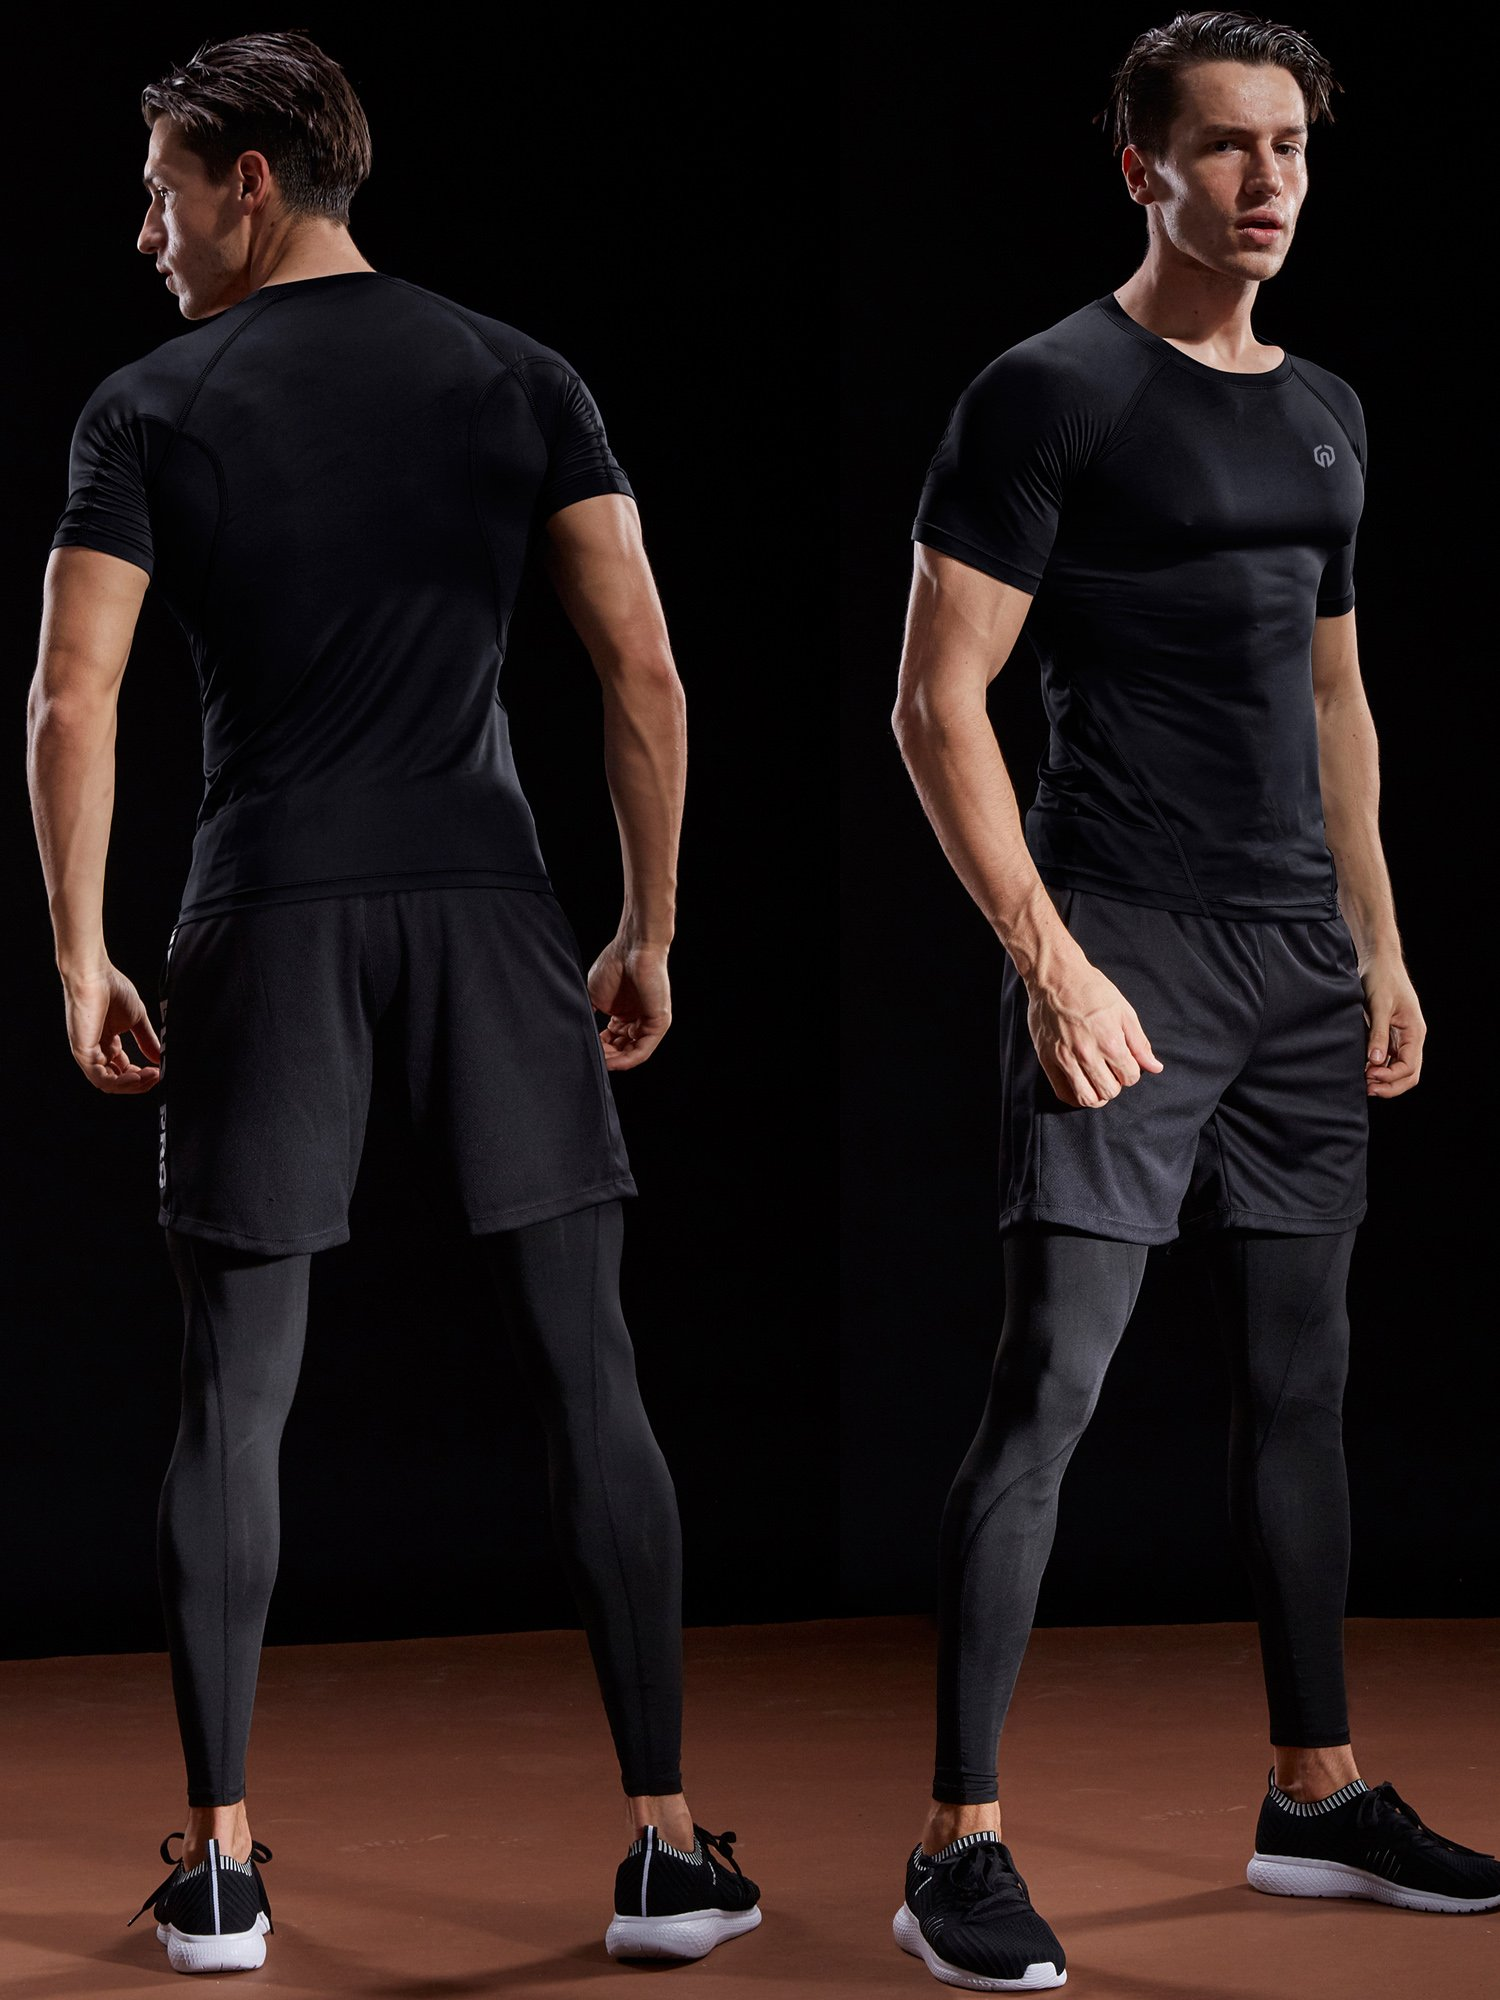 Neleus Men's 3 Pack Compression Baselayer Athletic Workout T Shirts,5022,Black,Grey,White,US S,EU M by Neleus (Image #2)